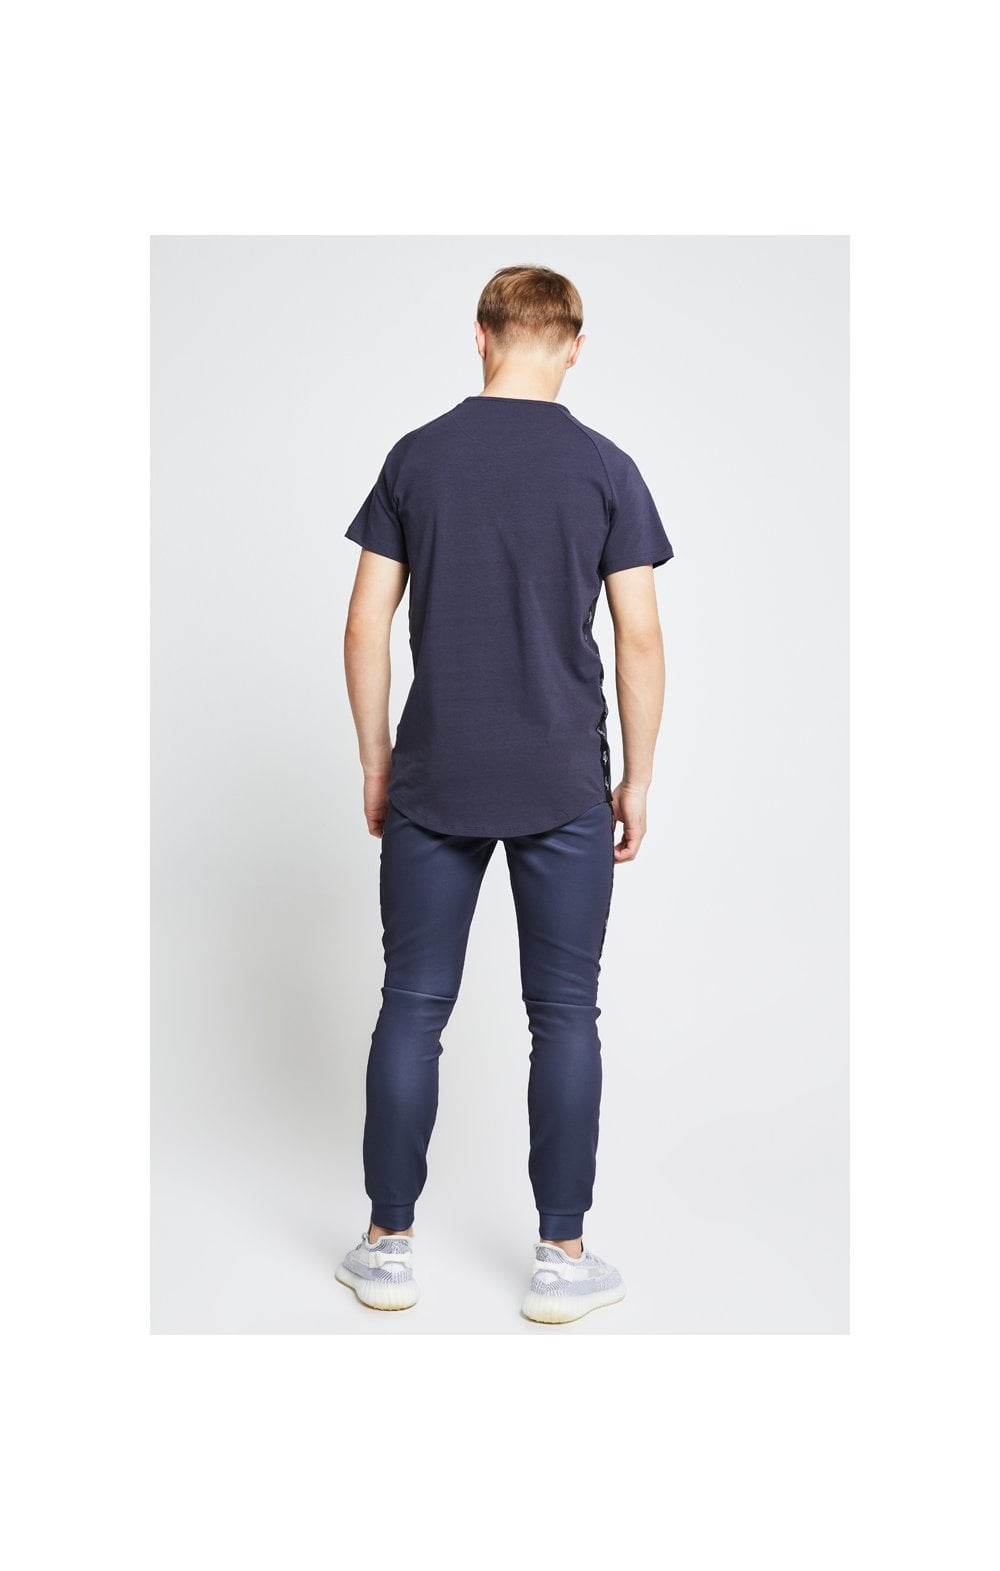 Illusive London Tape Slide Tee - Grey (6)